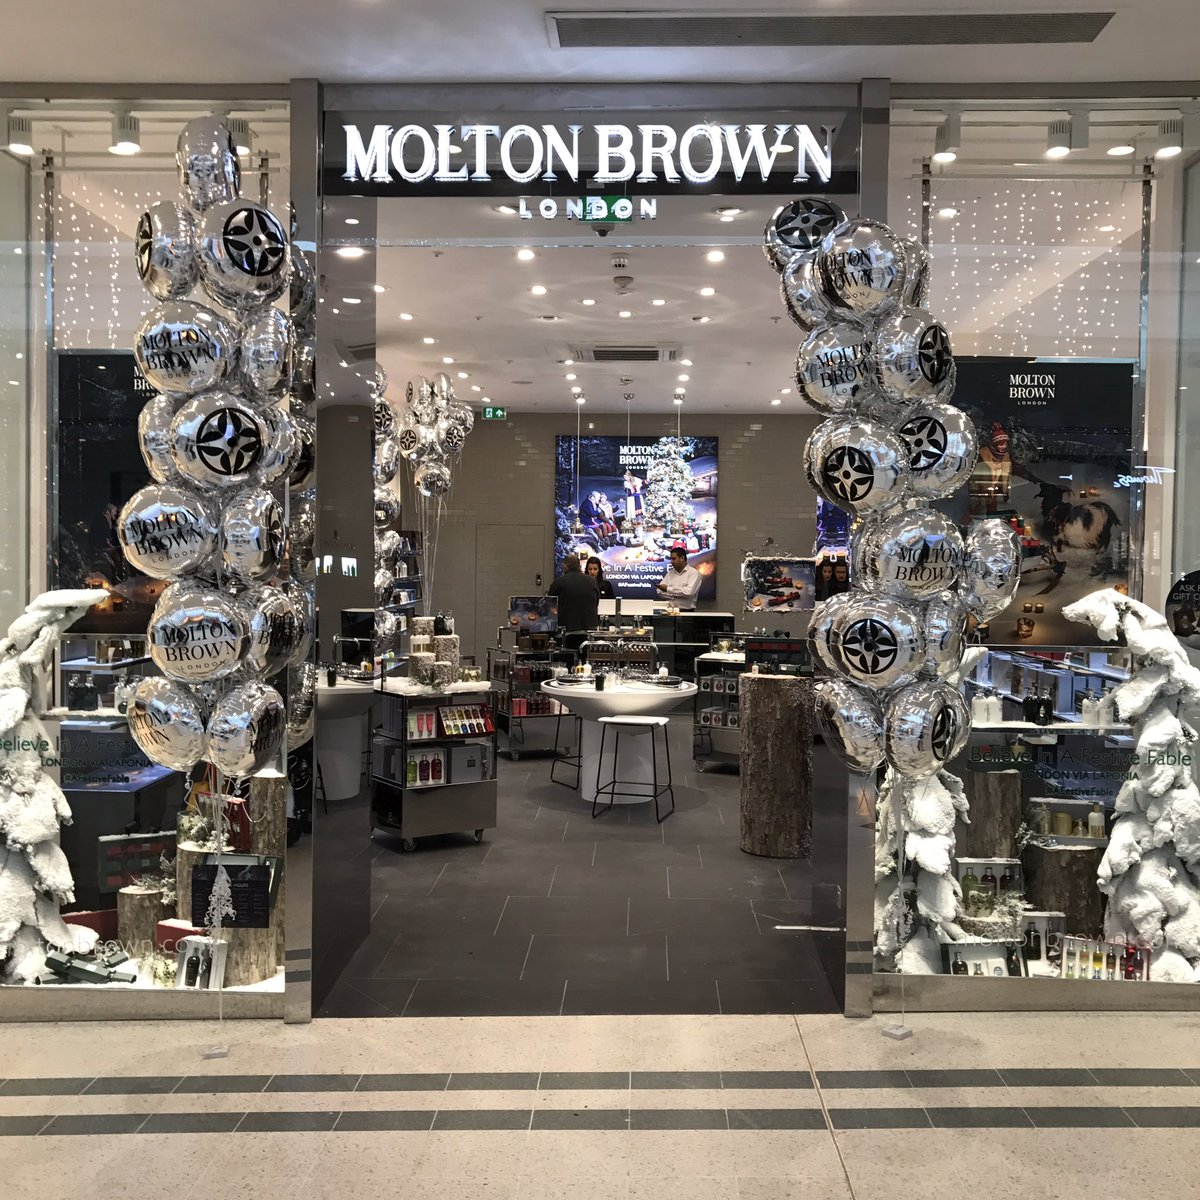 They are open! We are pleased to welcome @MoltonBrownUK to Bromley and the centre just in time for Christmas ! #allthatglitters https://t.co/k59F51nPjm